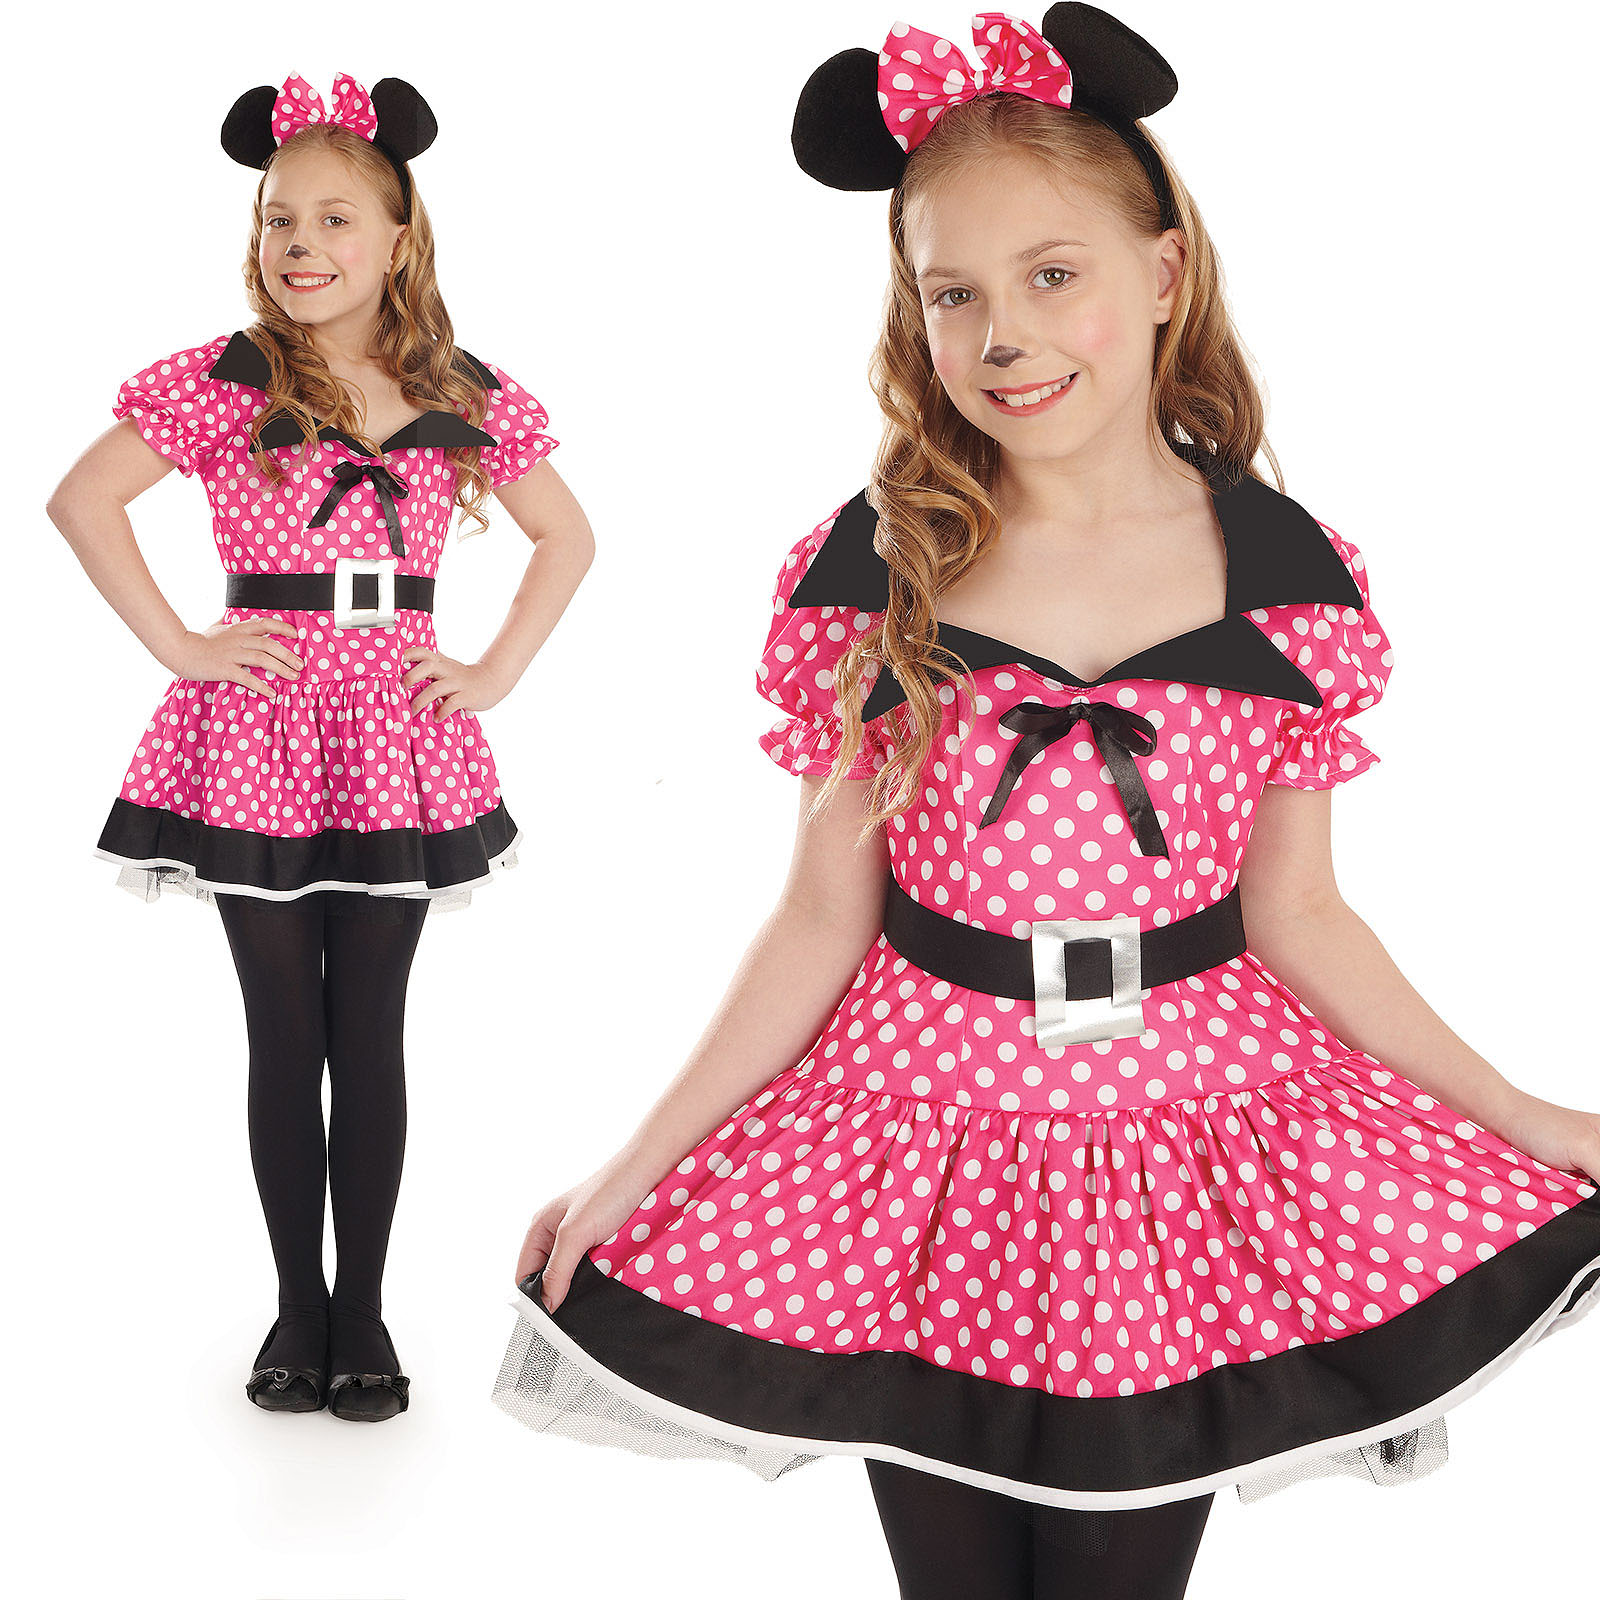 Childrens-Minnie-Mouse-Fancy-Dress-Costume-Disney-Kids-Girls-Outfit-4-12-Yrs thumbnail 5